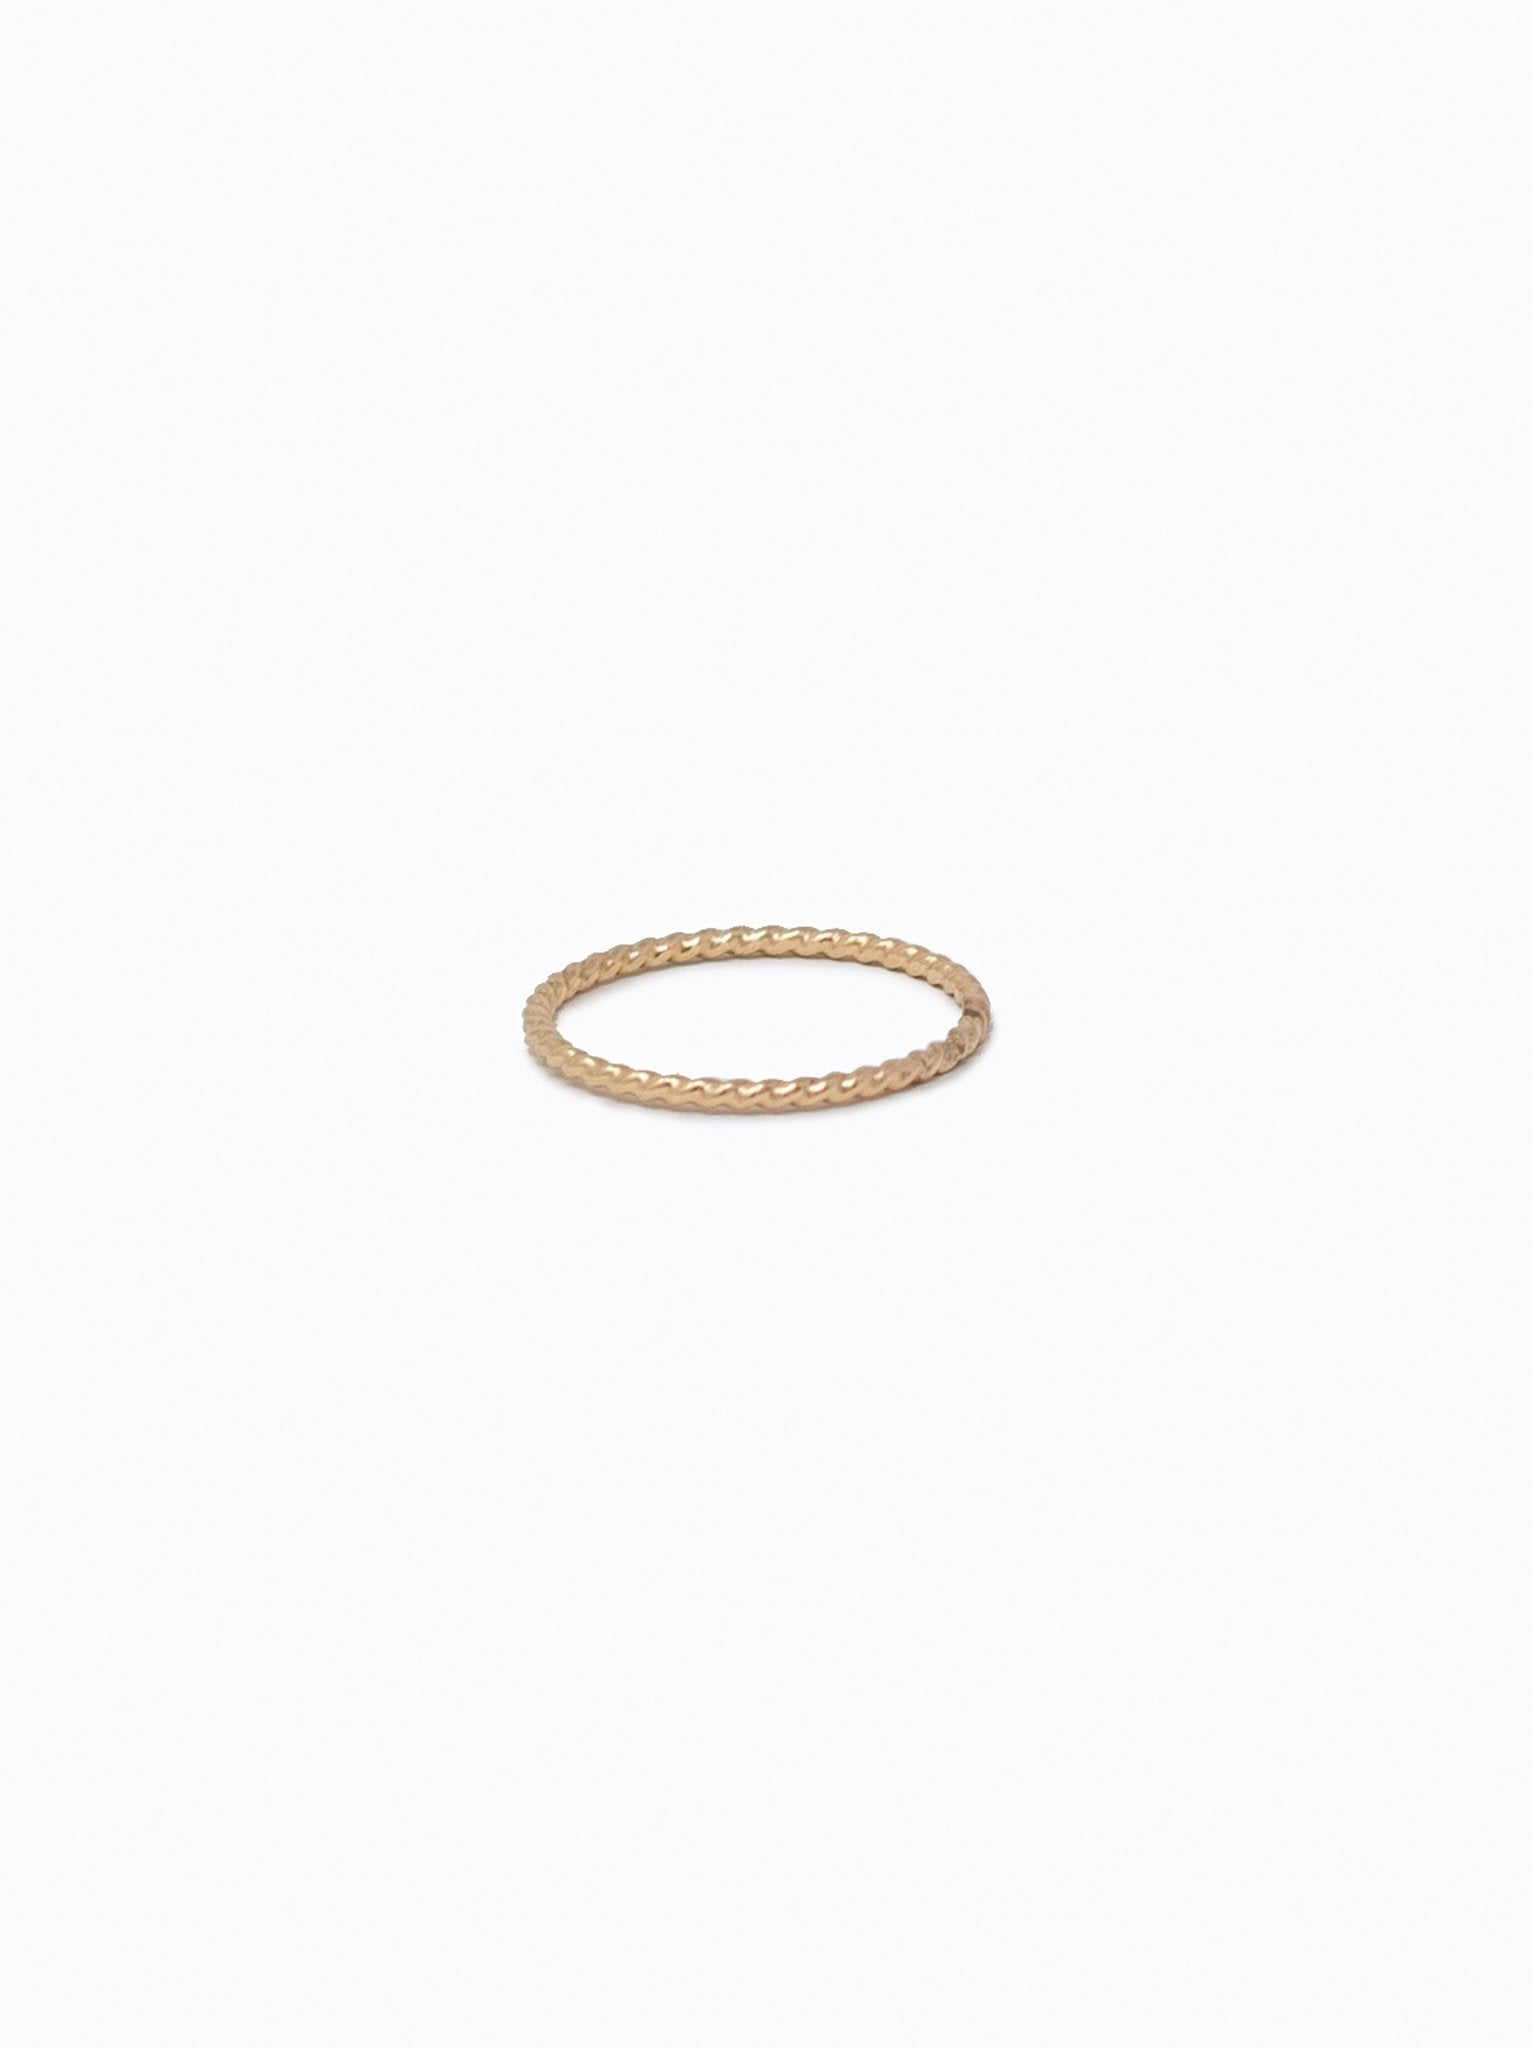 Able Twisted Stack Ring Rings in Gold at Wrapsody